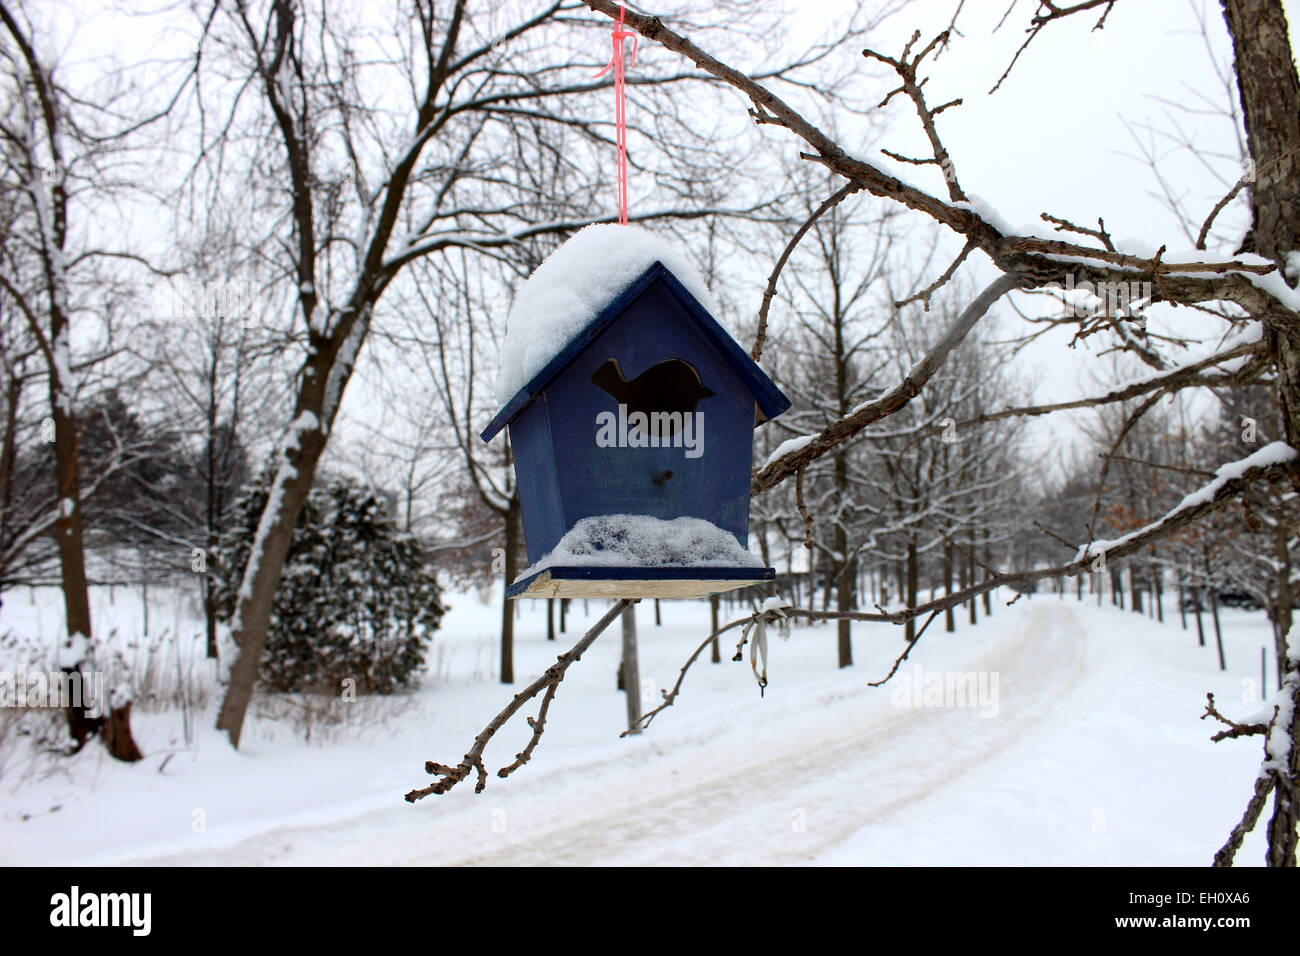 Photo of a forest and a small blue house hanging from a tree that protects the birds that endure during the cold - Stock Image